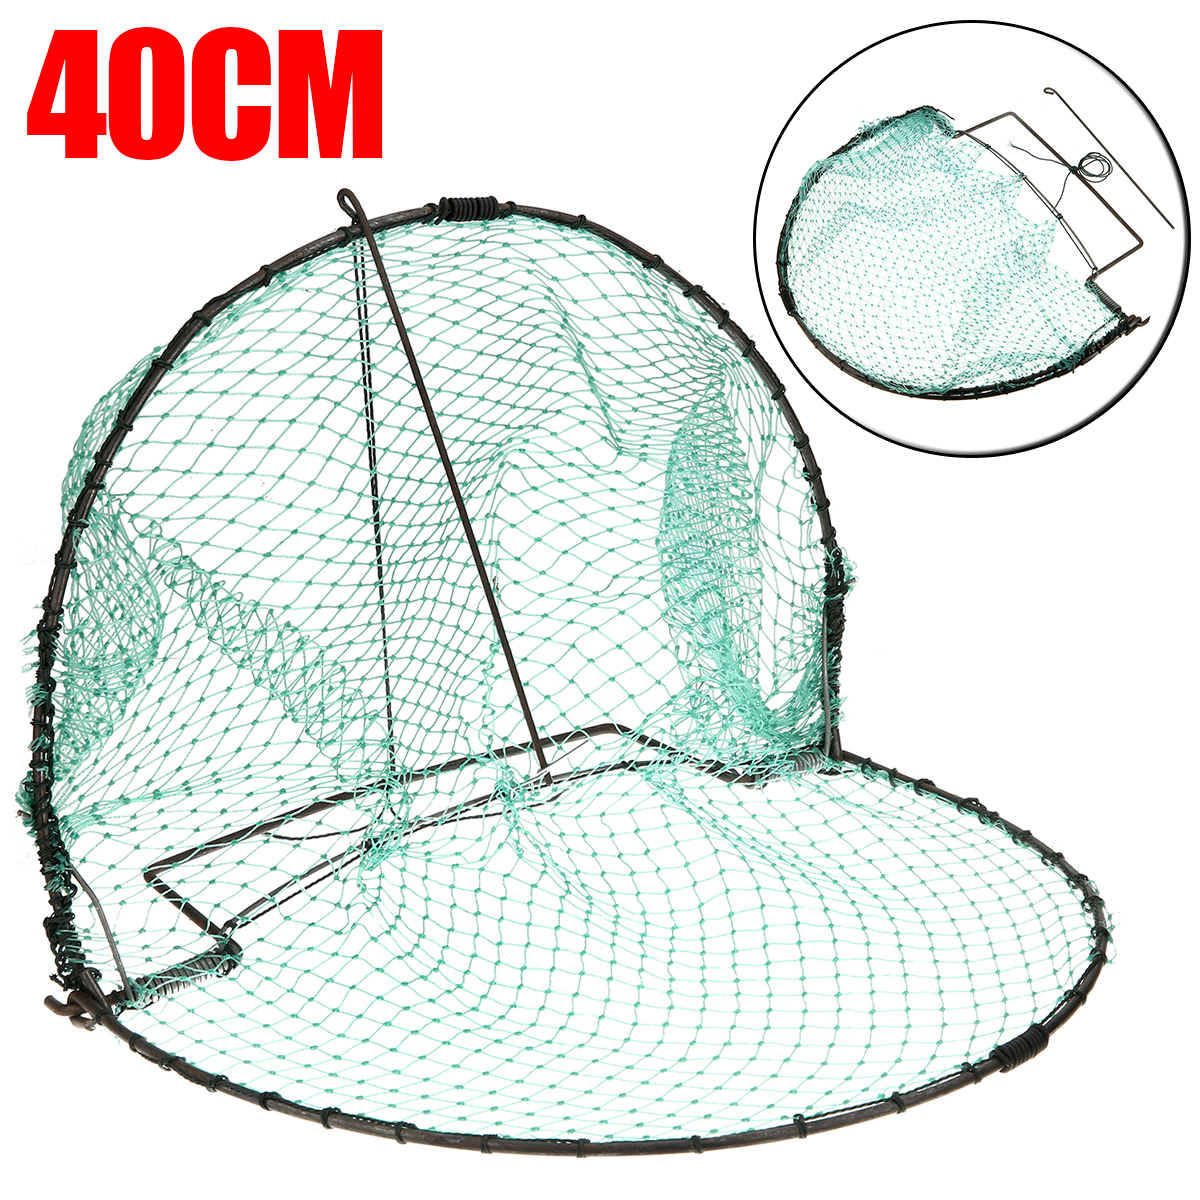 Bird Sparrow Pigeon Quail Trap Mesh Outdoor Hunting Foldable Netting  Corrosion Resistance 40cm|Outdoor Tools| |  - title=